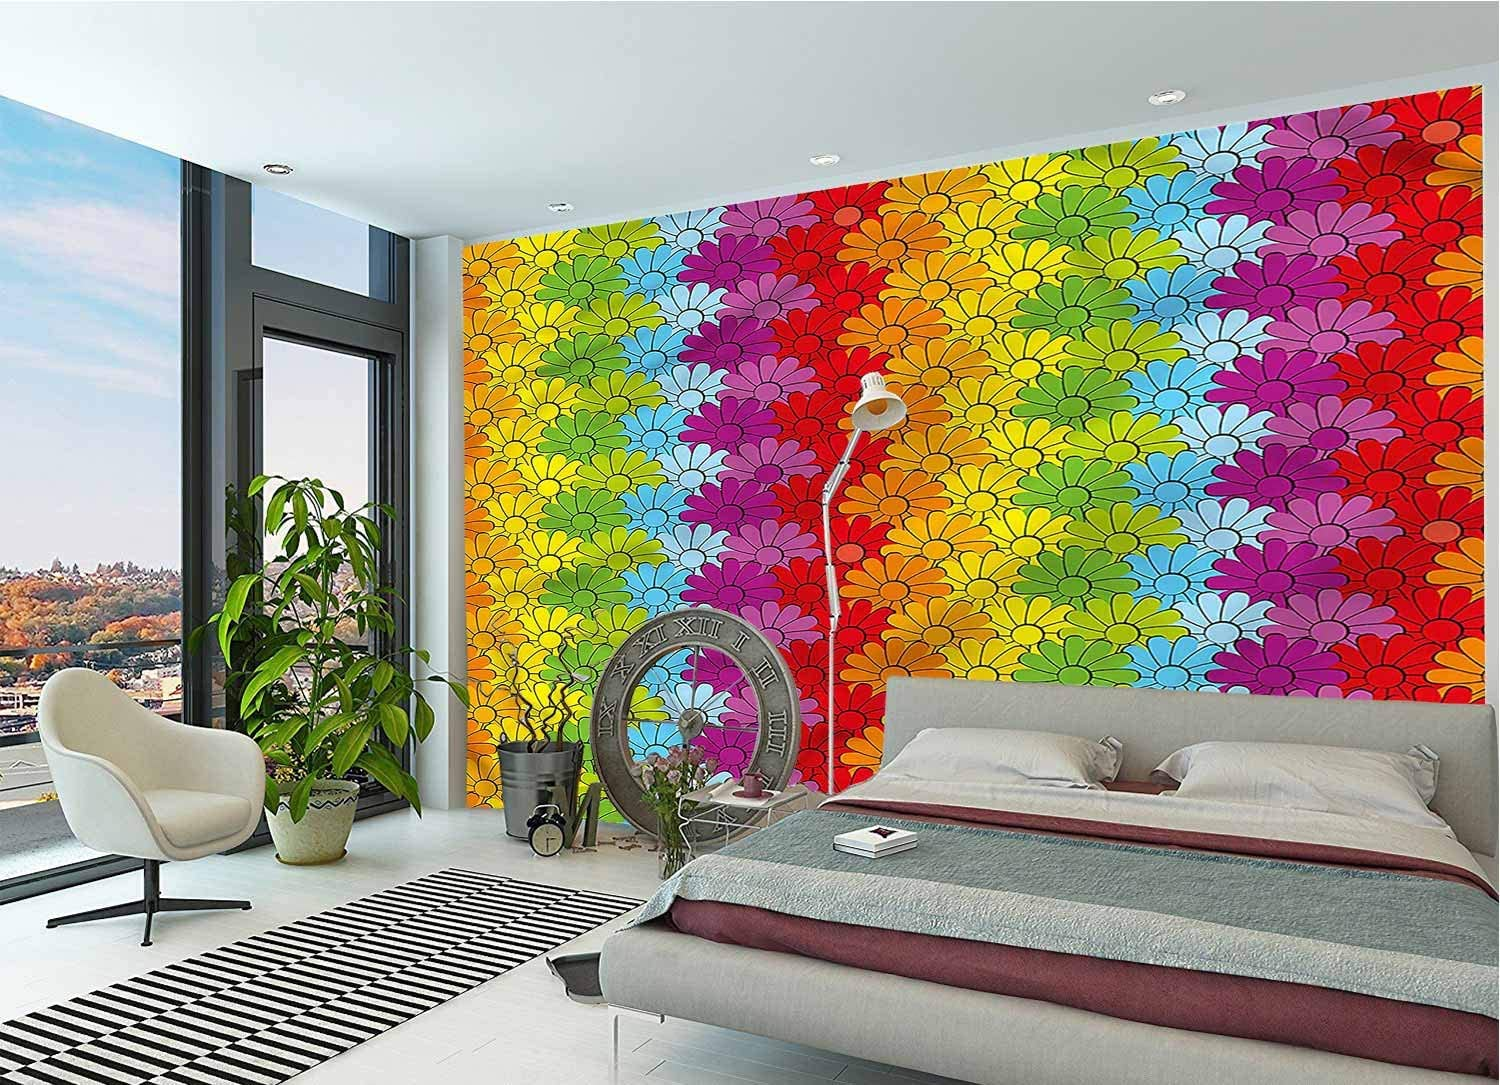 LCGGDB Floral Wall Mural Decal,Rainbow Colored Flowers Peel and Stick Self-Adhesive Wallpaper for Livingroom Bedroom Nursery School Family Wall Decals-78x55 Inch